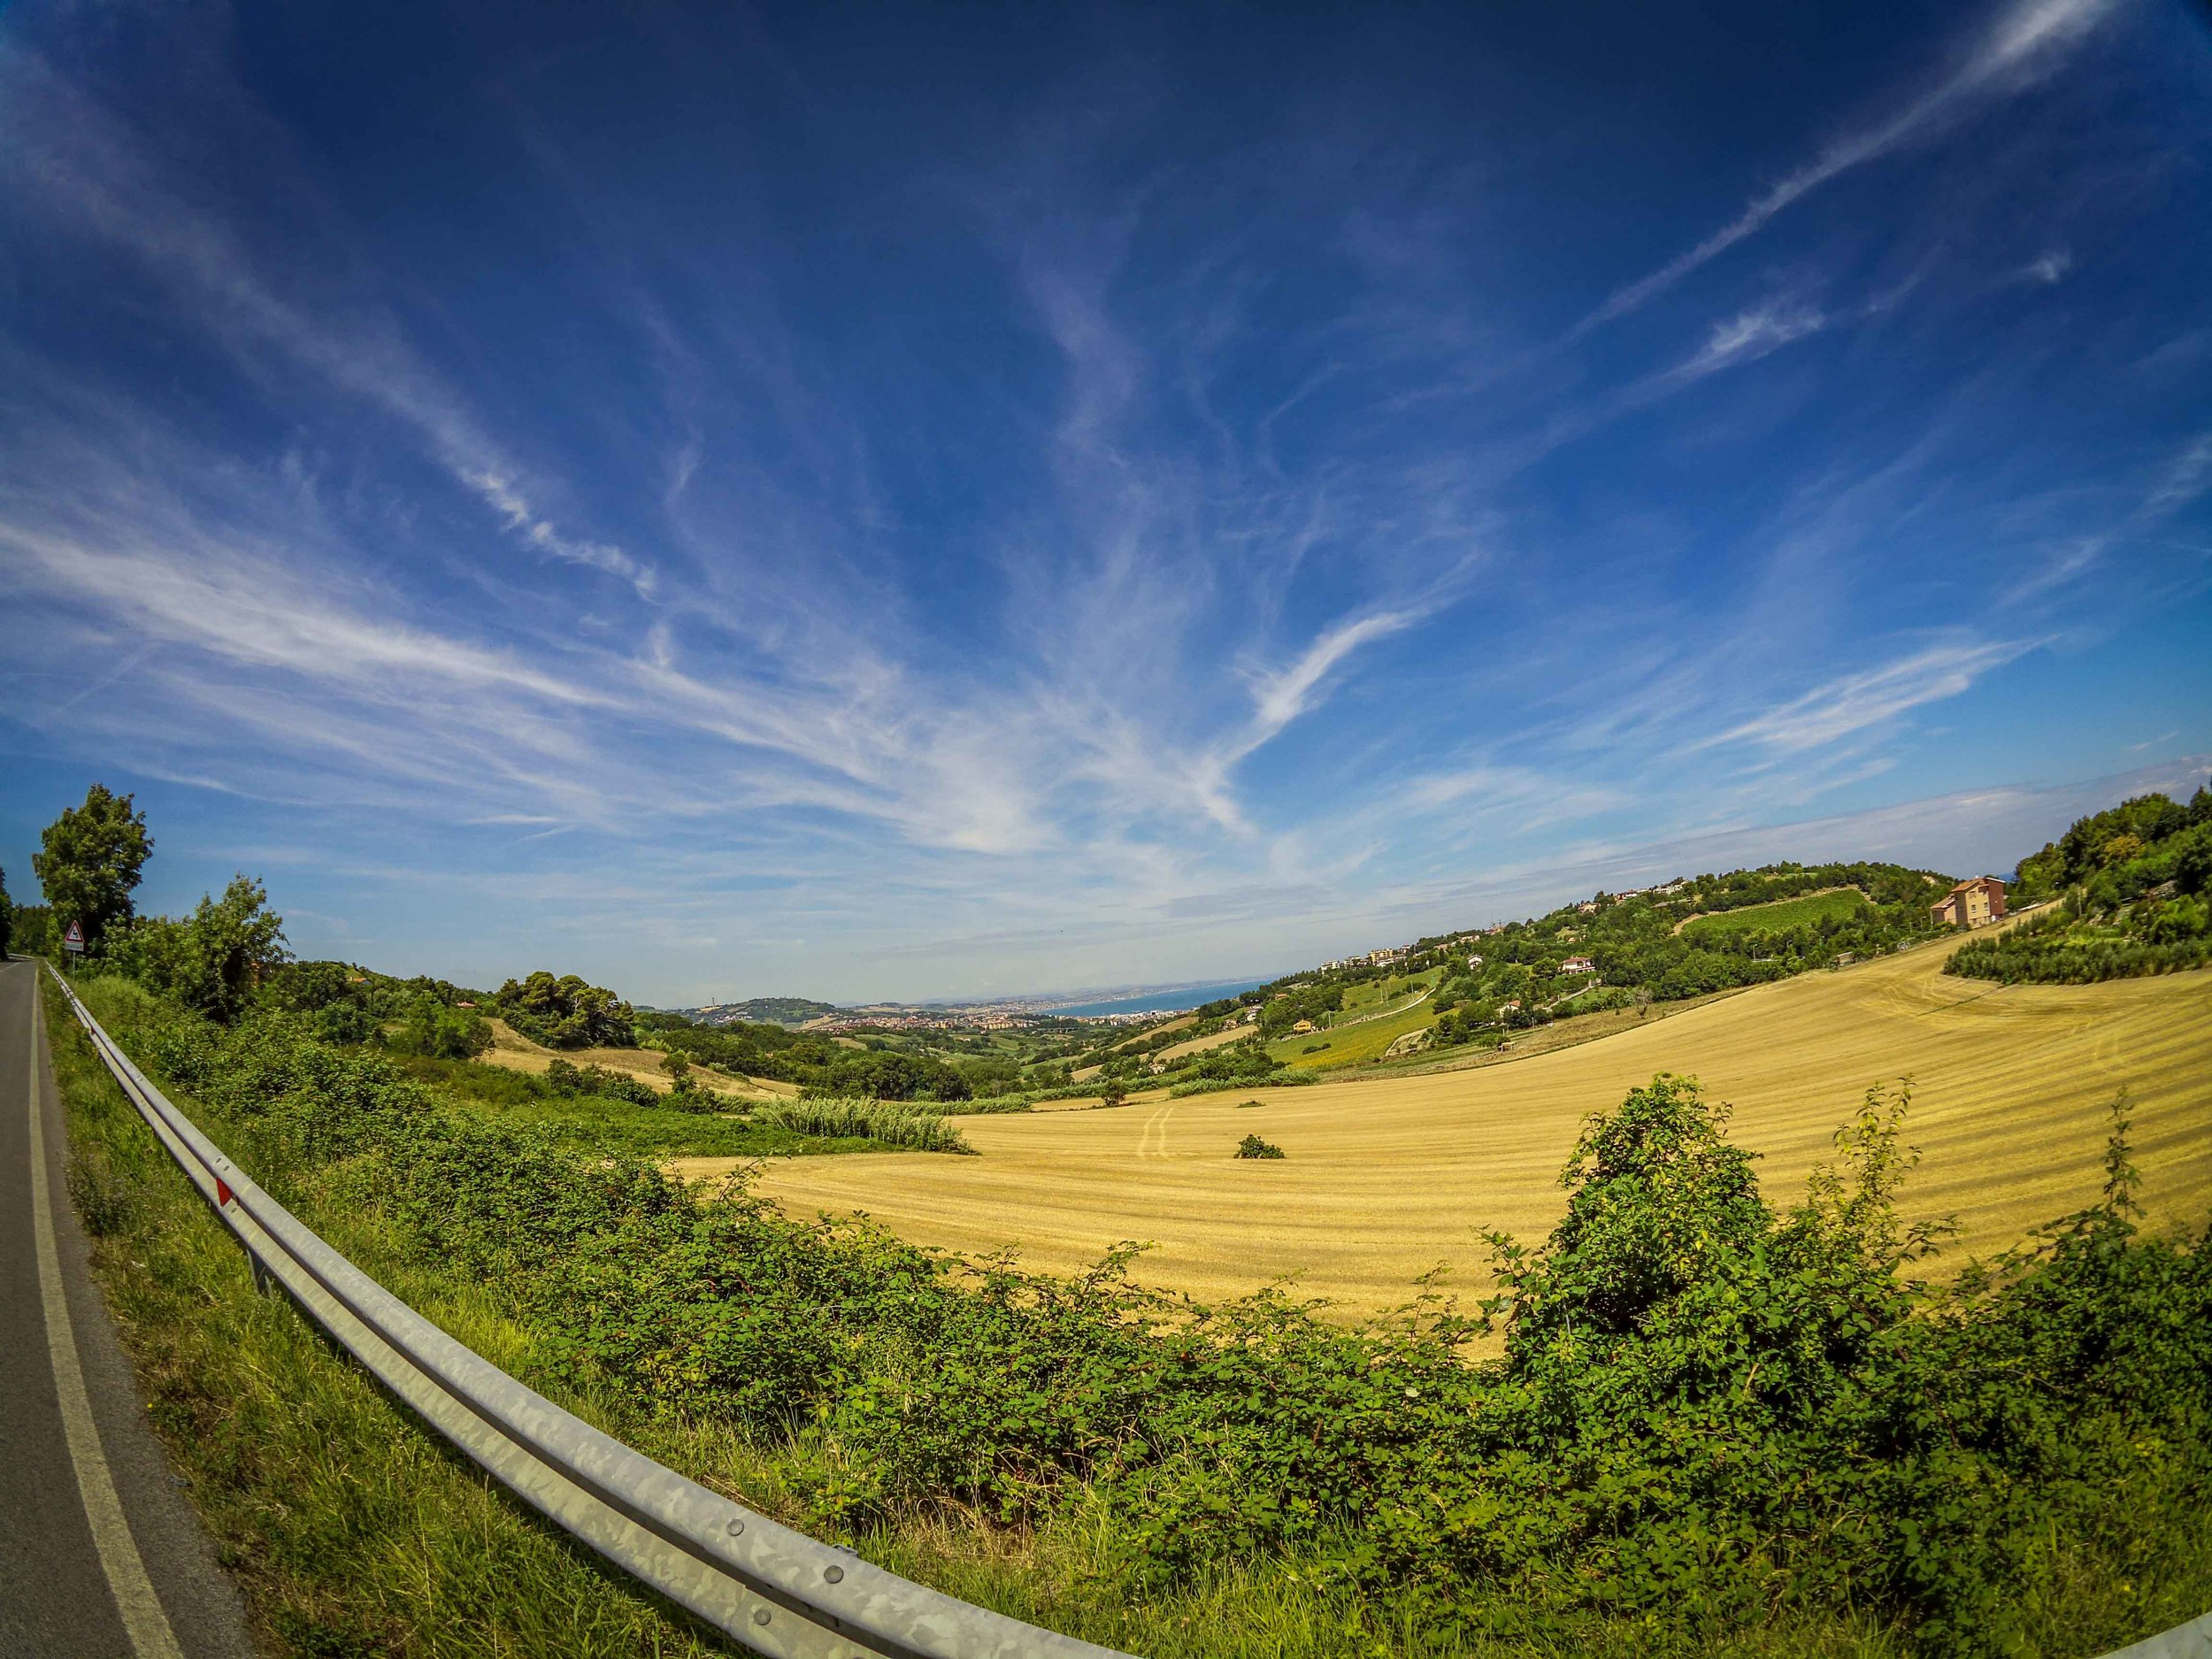 Road Cycling Routes   Browse the most epic routes I've ridden and recommend to ride.